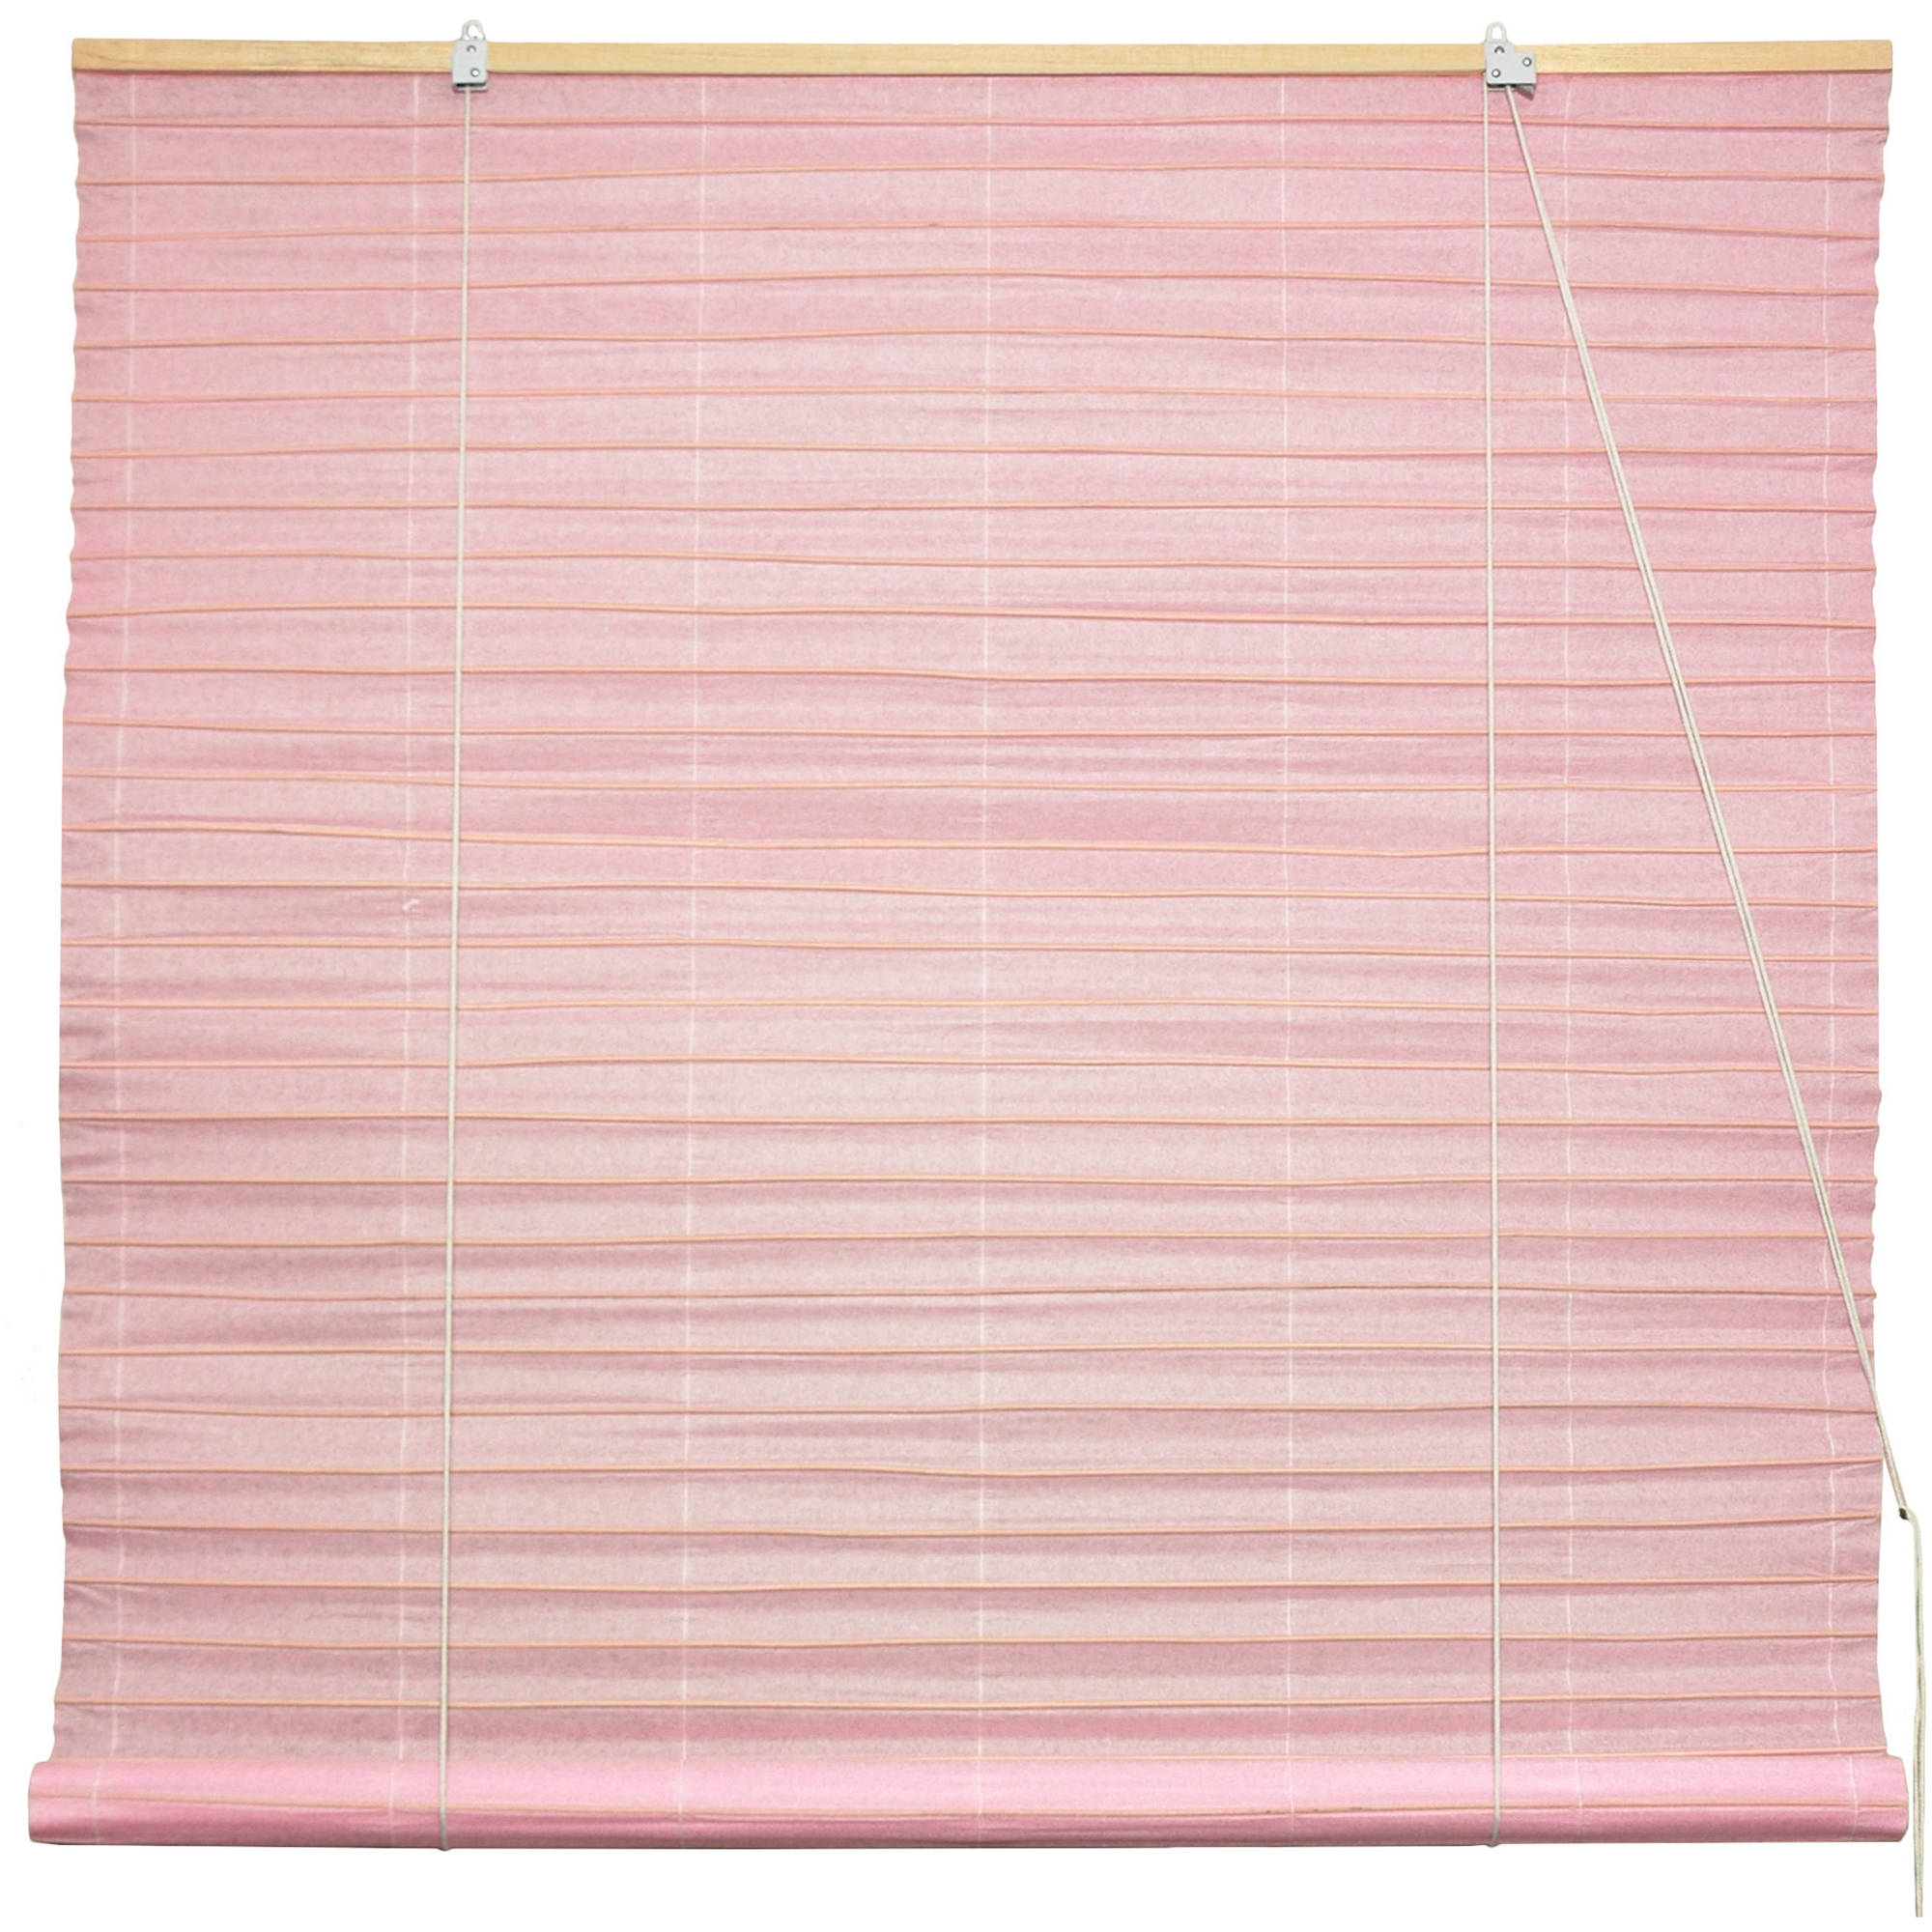 Shoji Paper Roll Up Blinds, Light Pink